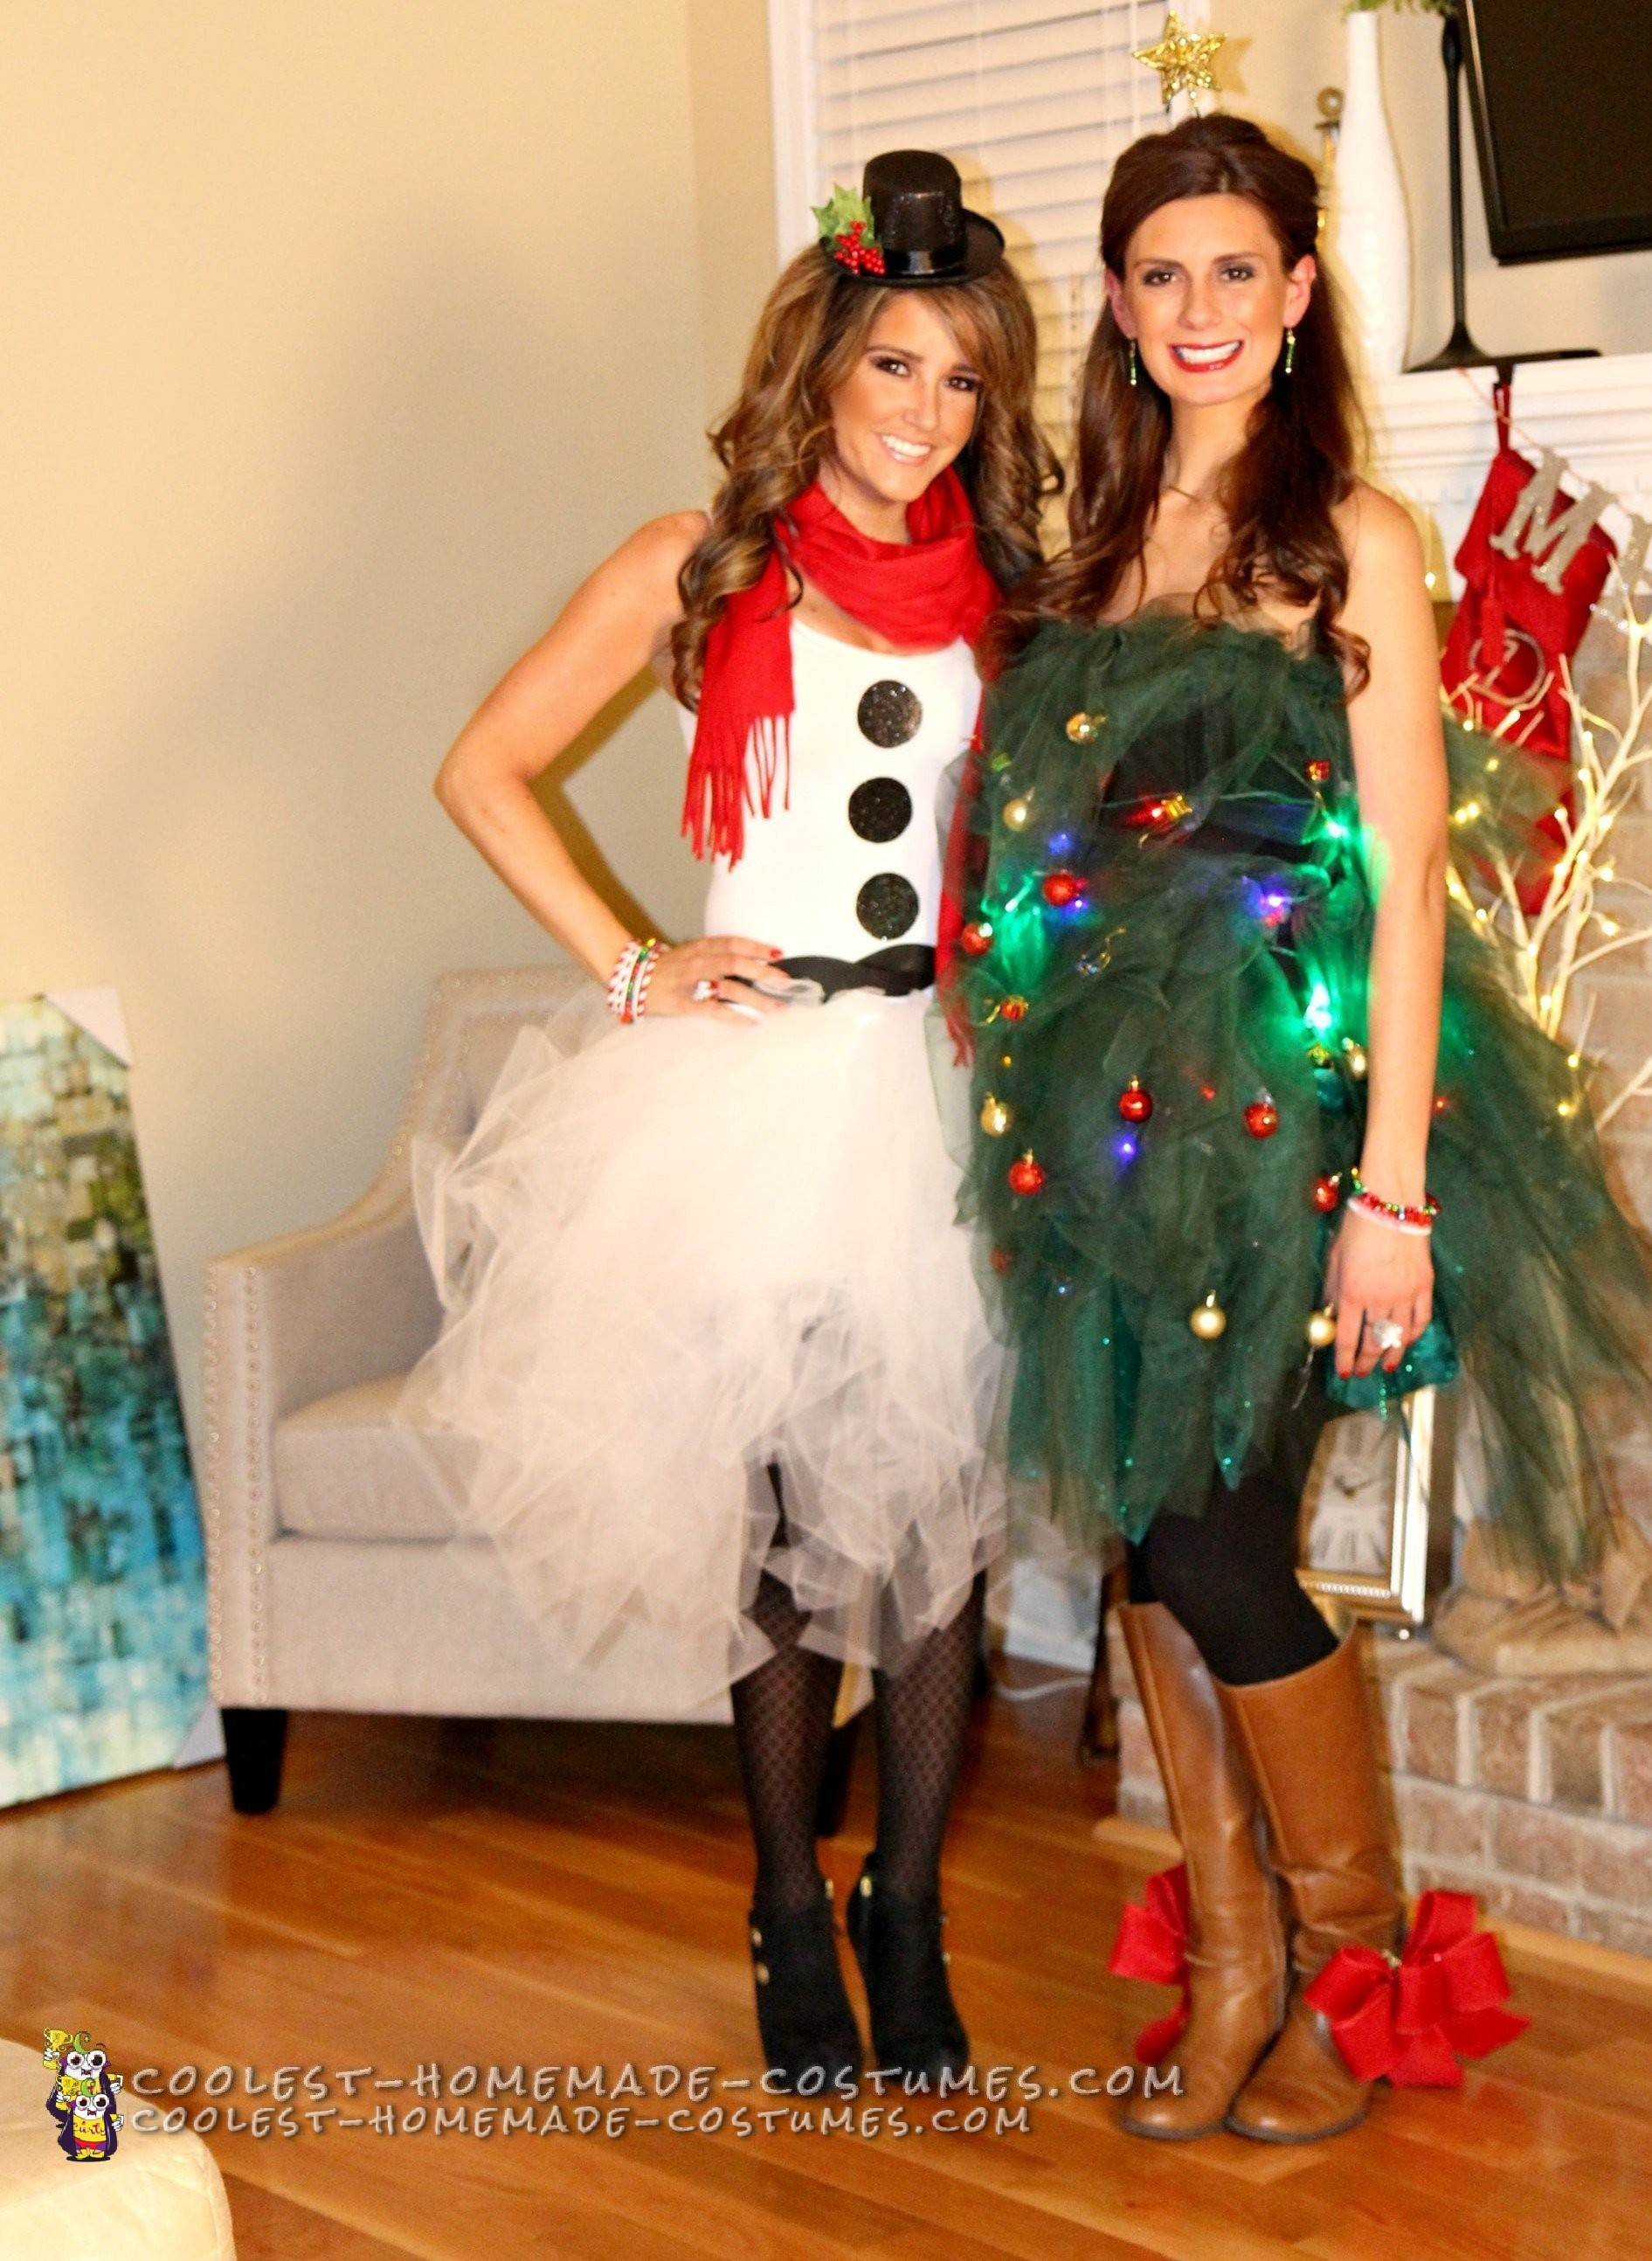 Best ideas about DIY Christmas Costumes . Save or Pin Easy Tulle Snowman and Christmas Tree Couple Costume Now.